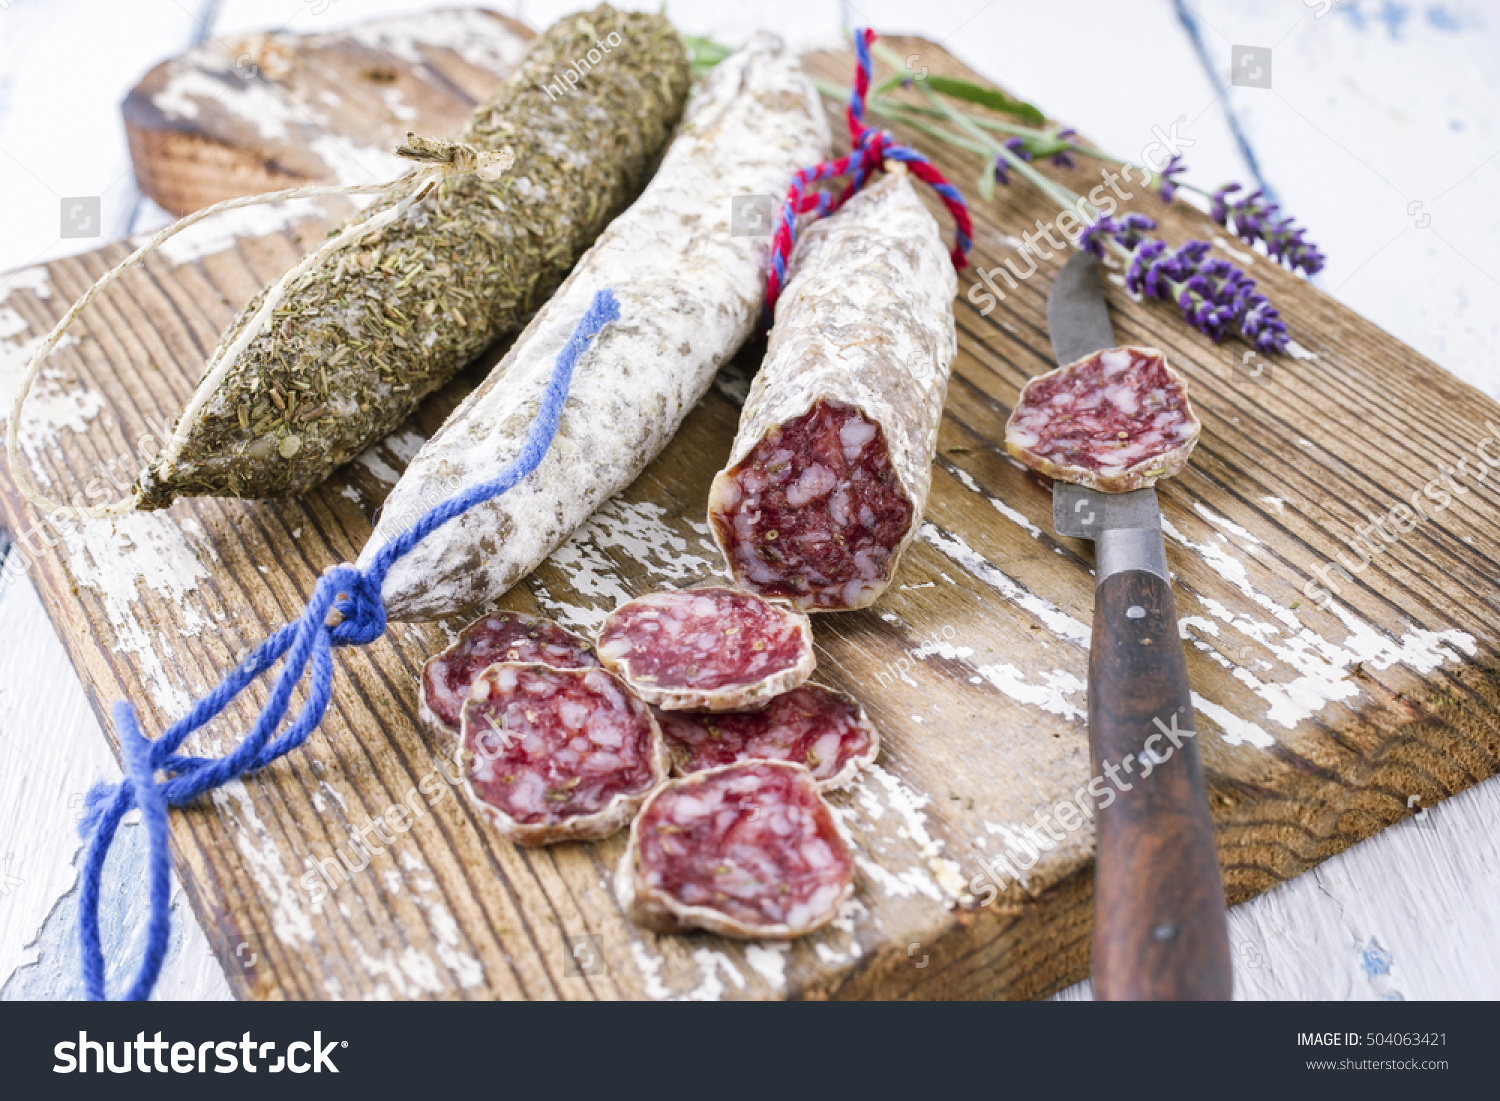 Stock Photography Cold Cut Sandwich Isolated Image21956542 together with 3674 additionally Coldcuts furthermore Antipasto Platter also Deli Cold Cuts Wallpaper. on pepperoni cold cuts